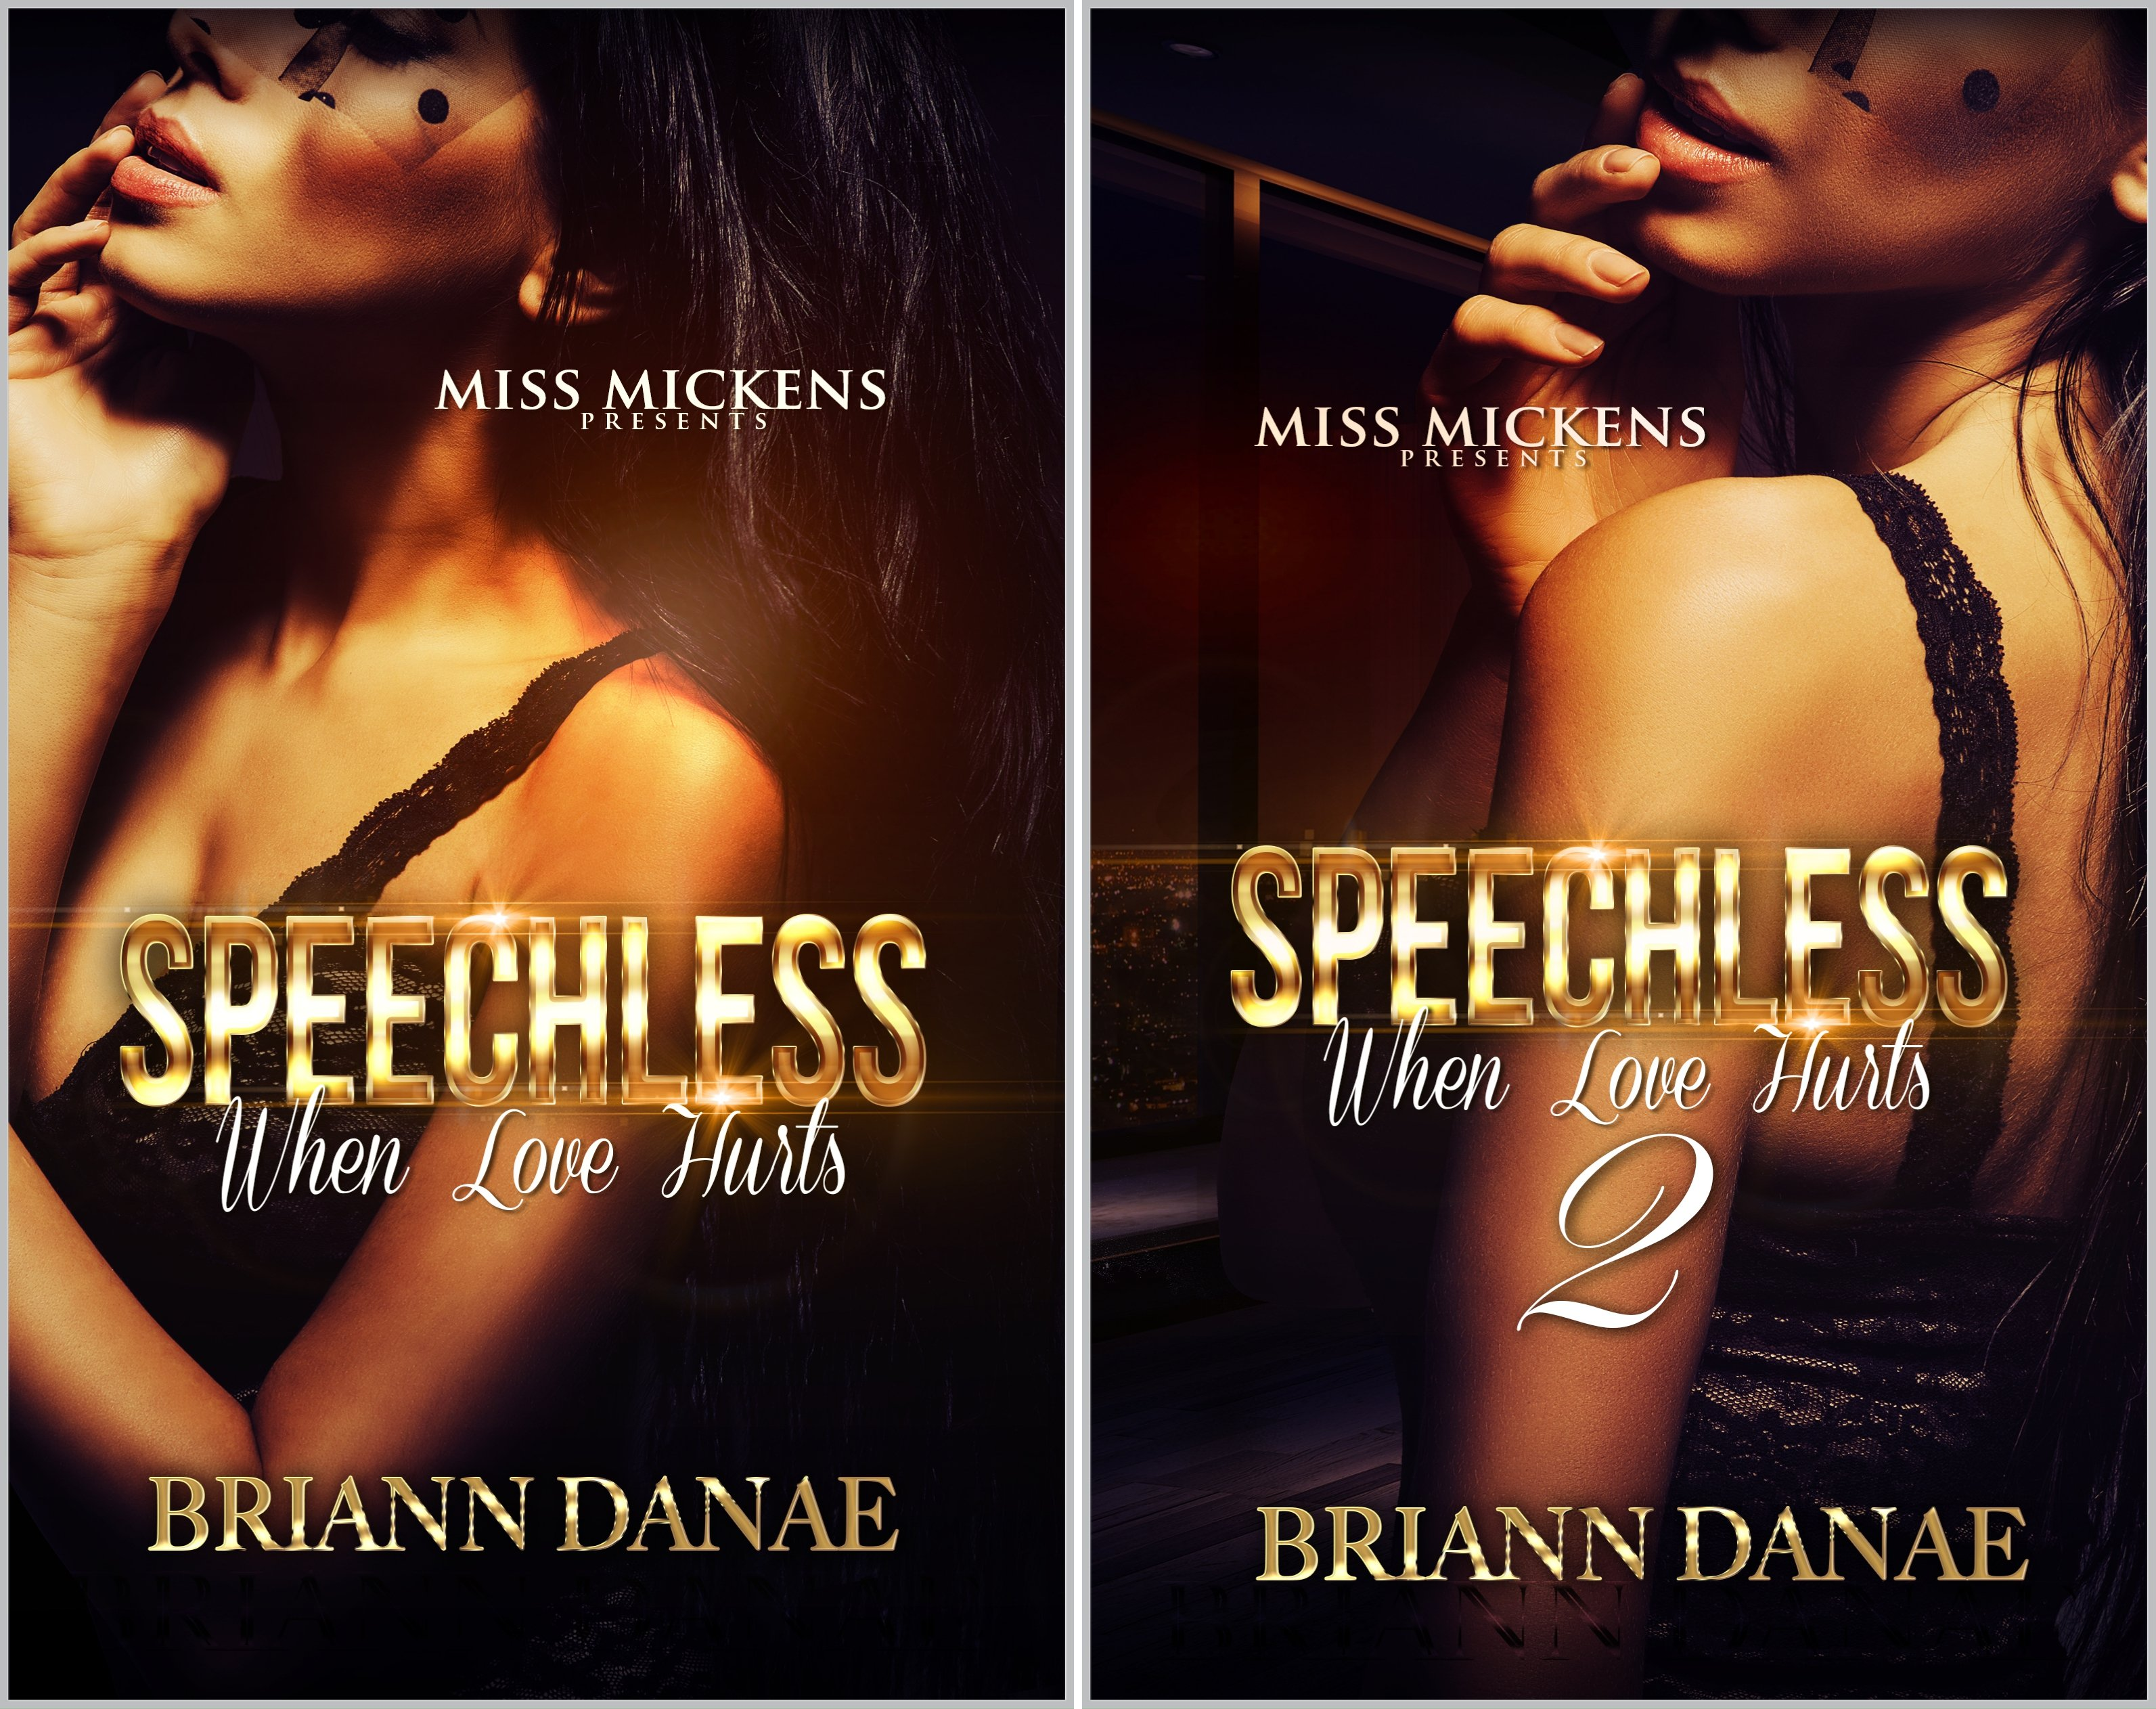 Speechless: When Love Hurts (2 Book Series)